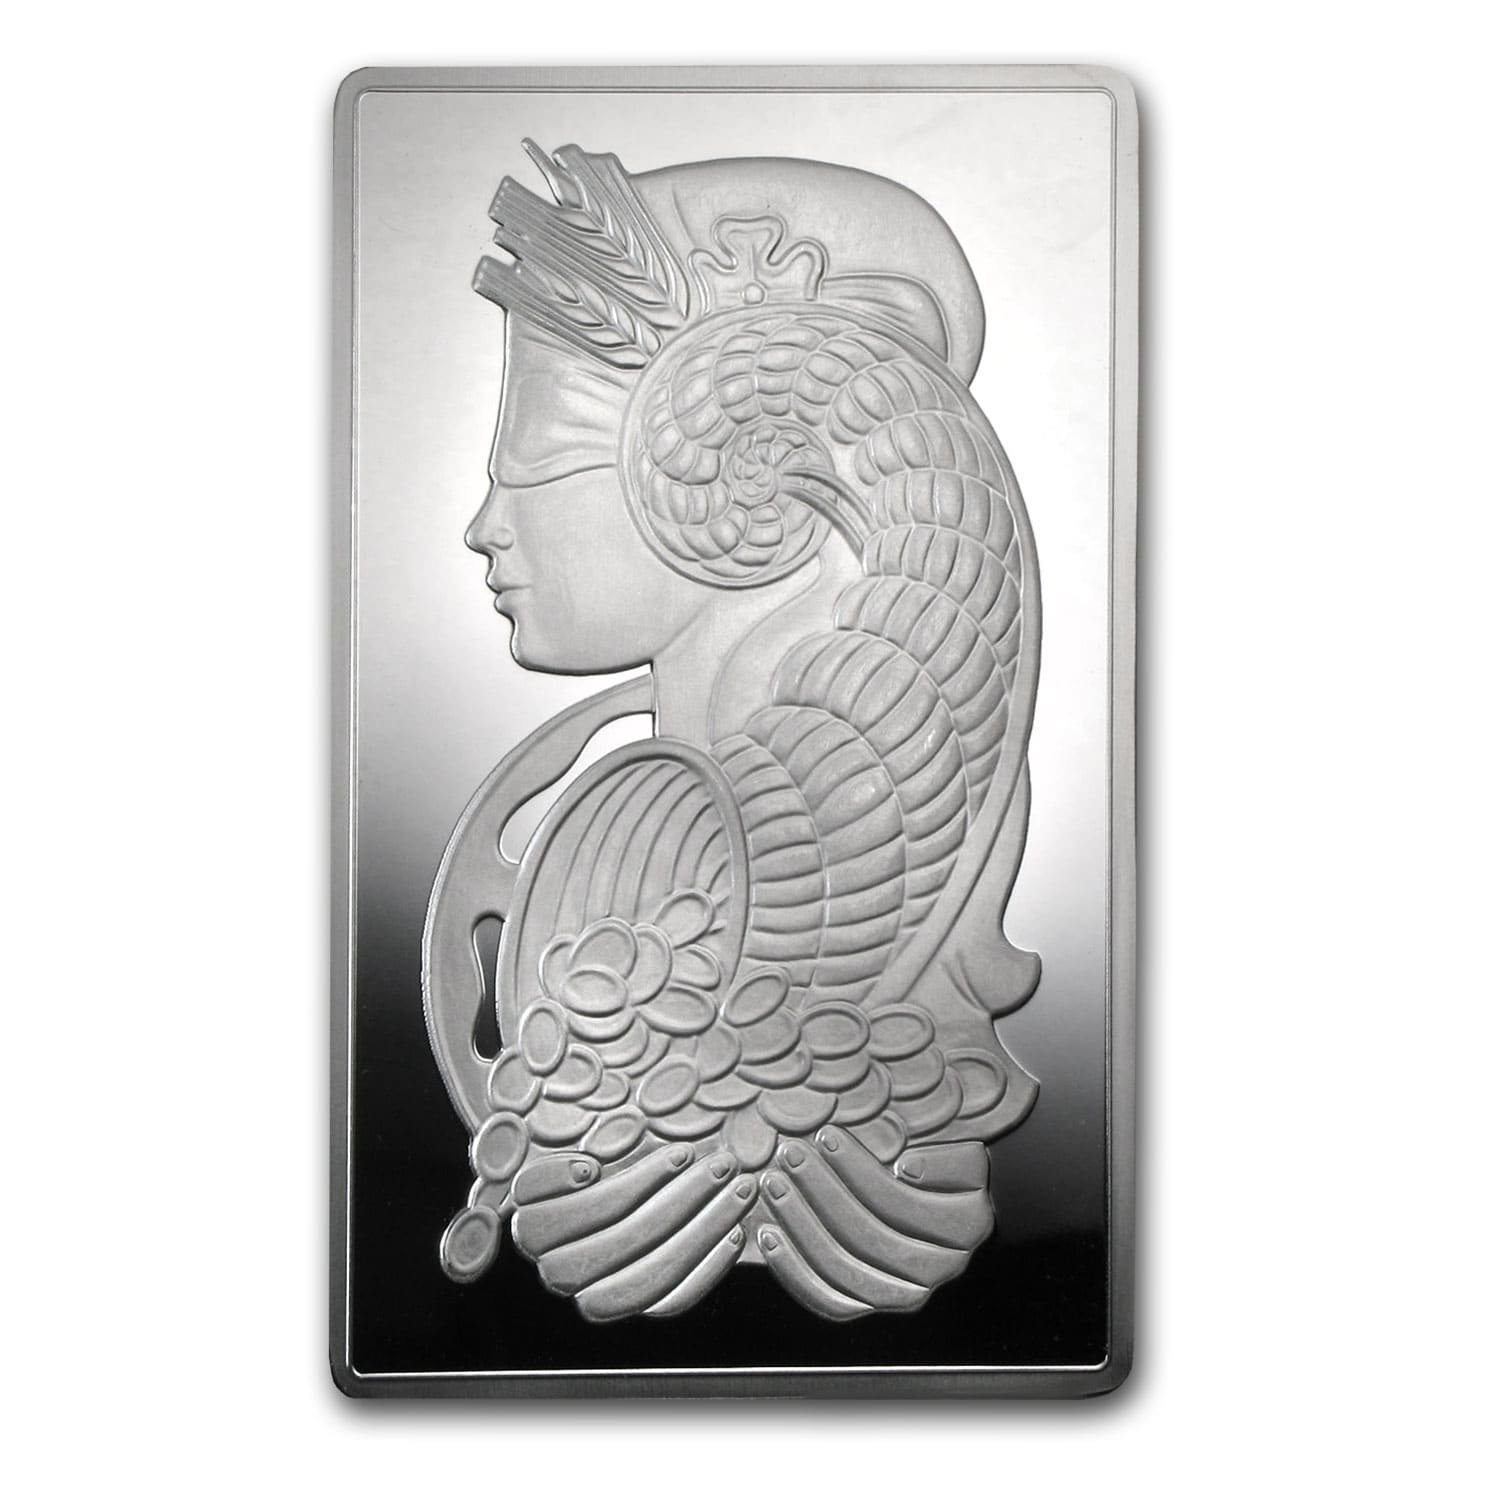 10 oz Silver Bar - Pamp Suisse (Fortuna)